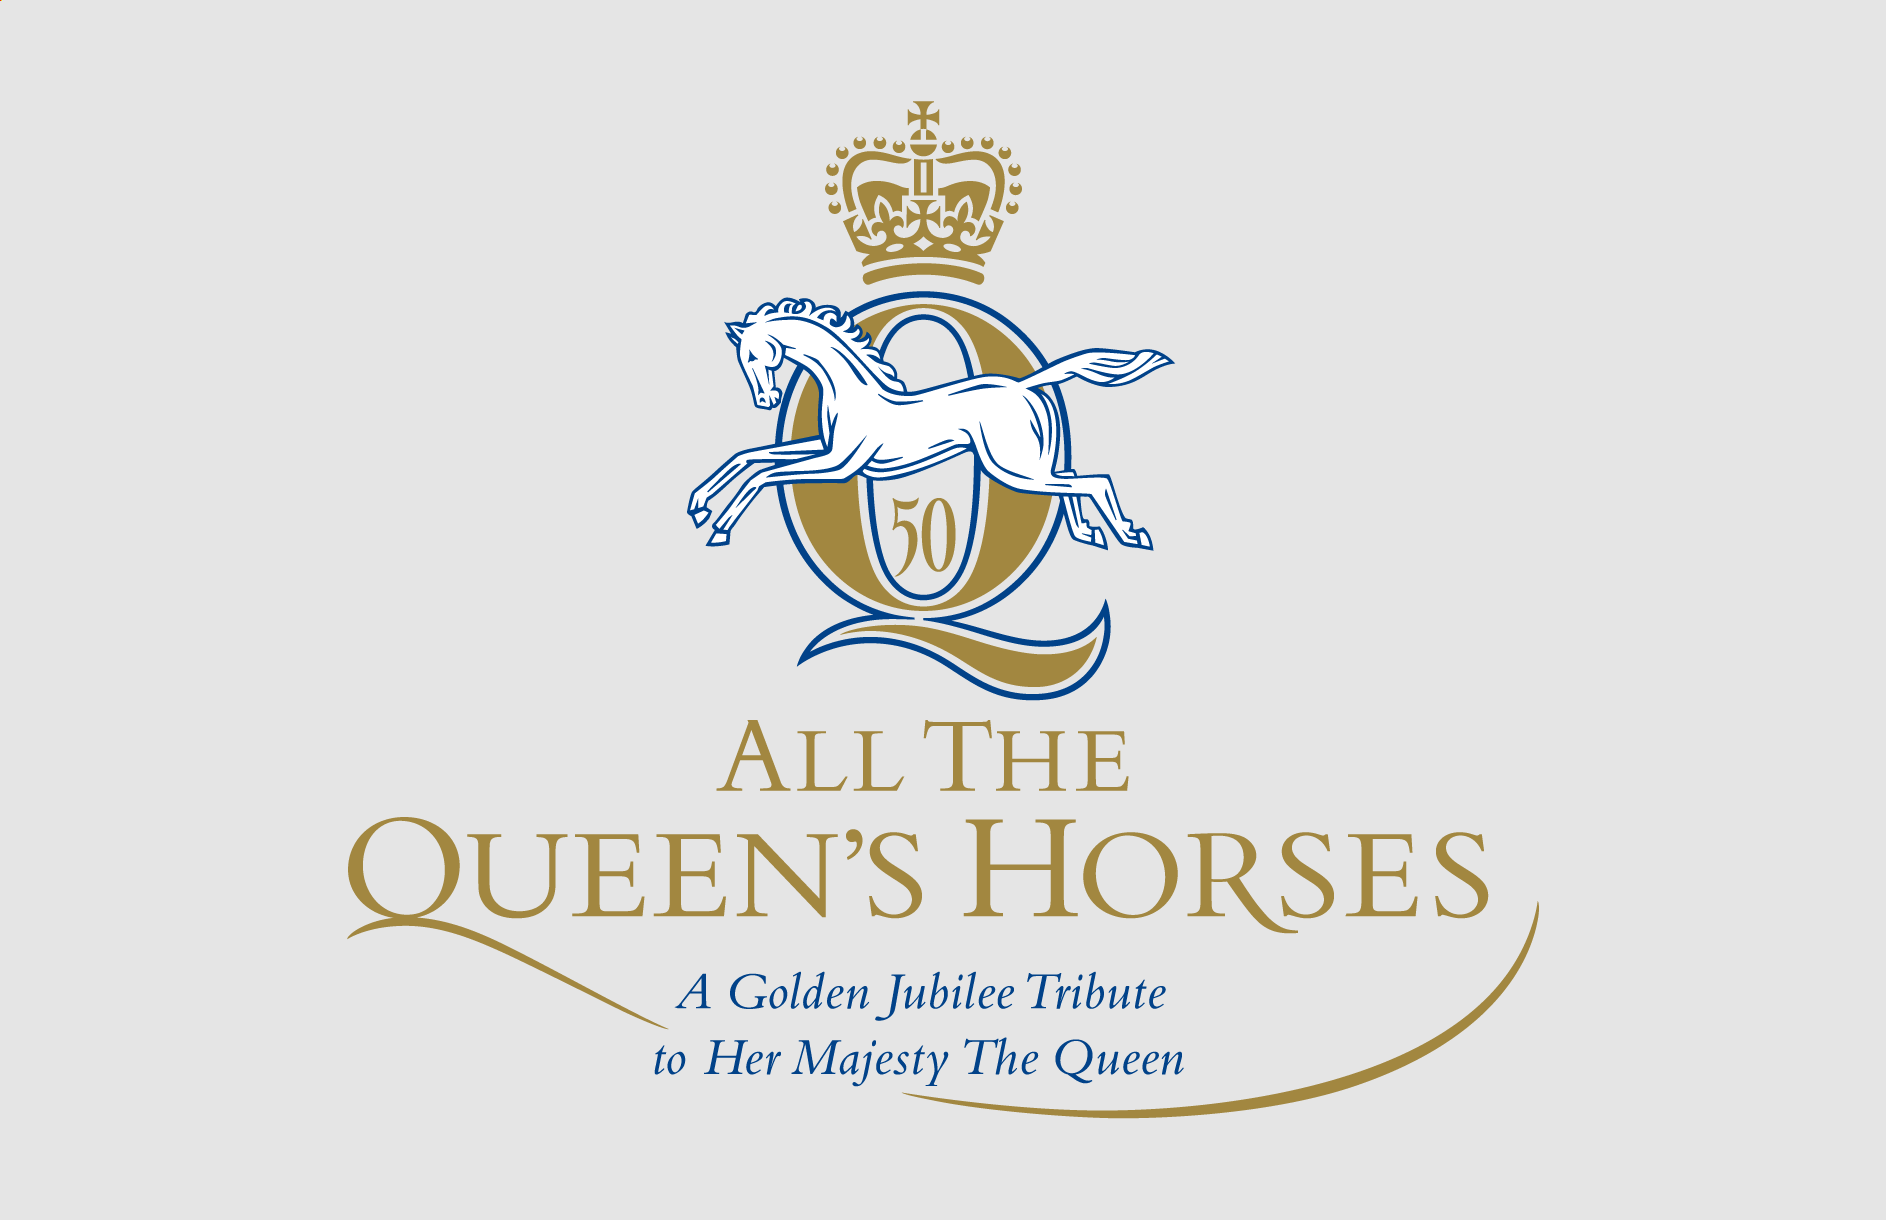 All the Queen's Horses / Identity